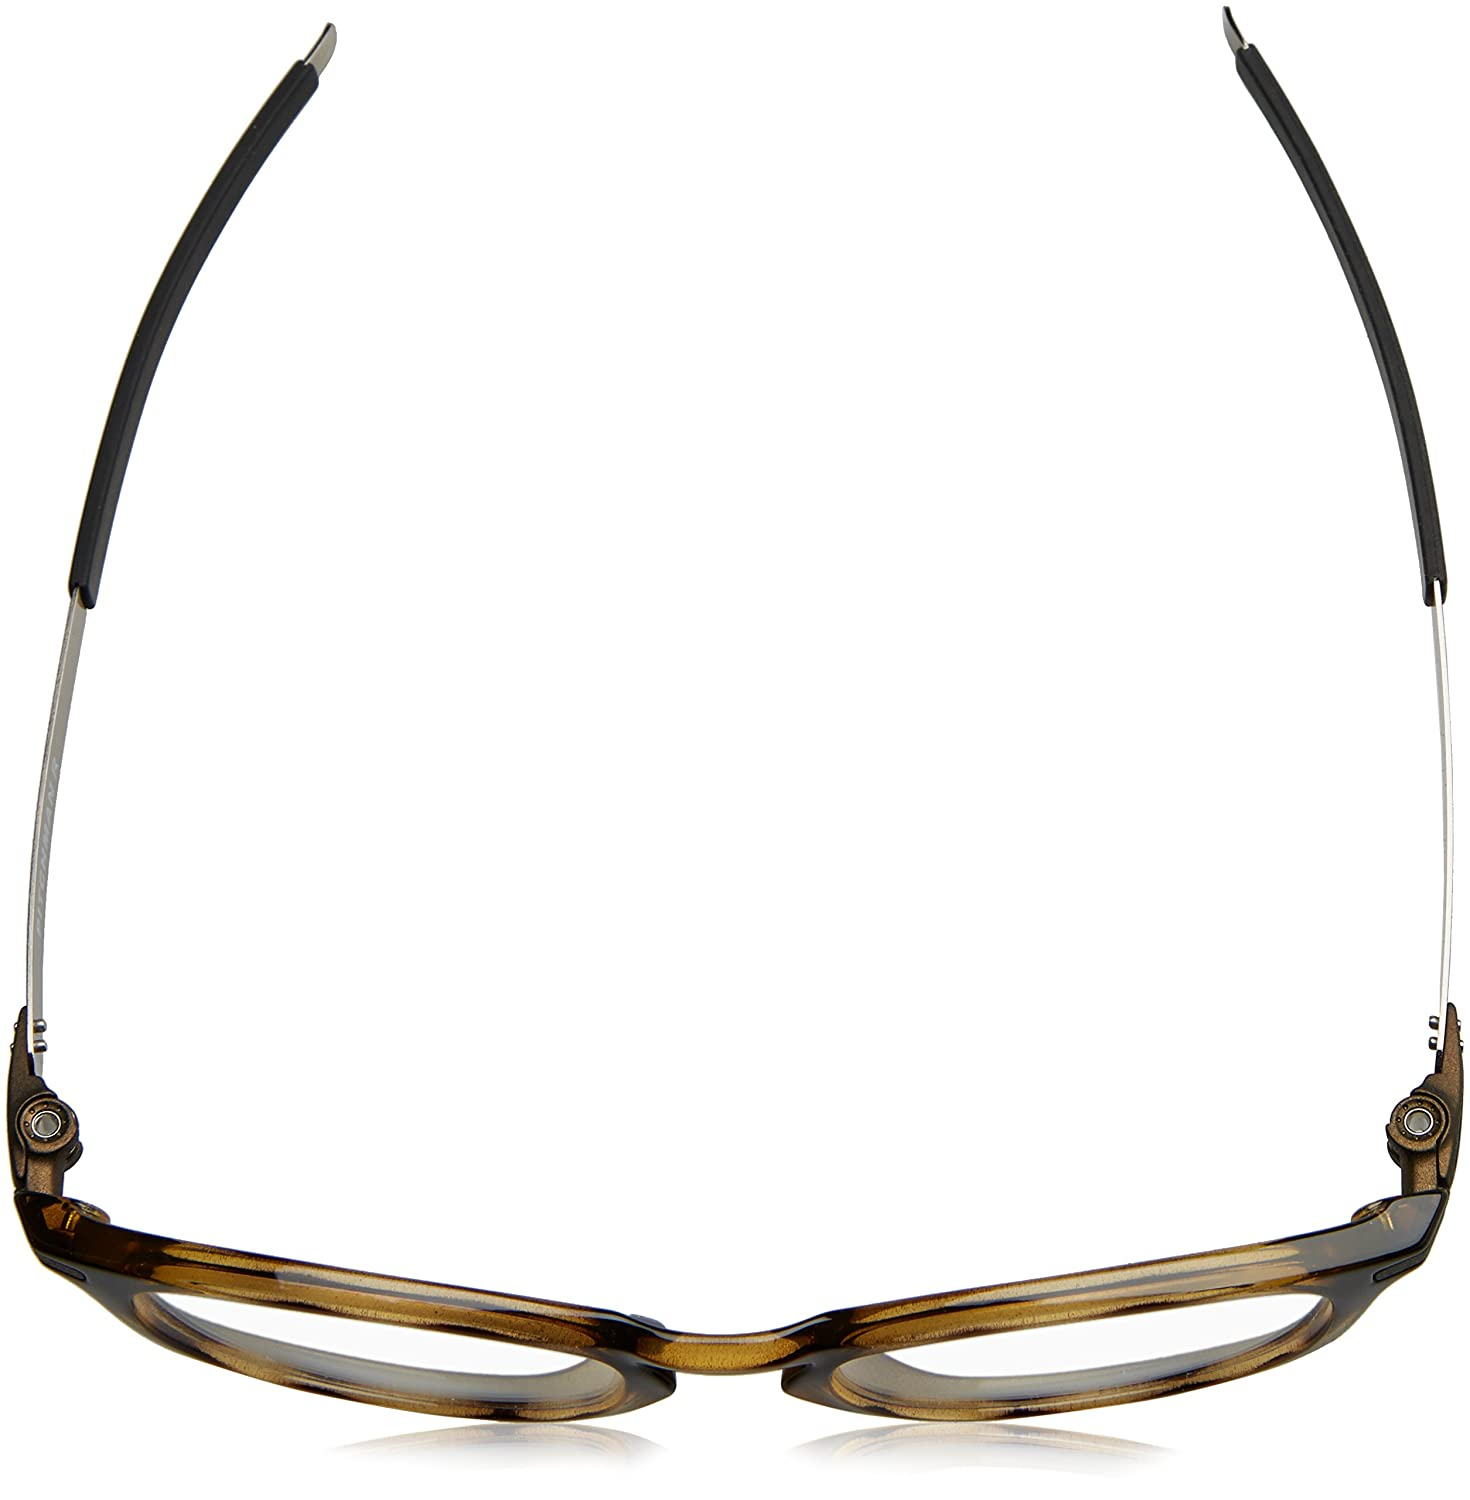 9301162cc1 Amazon.com  Oakley Designer Eyeglasses Pitchman R OX8105-0350 in  Brown-Tortoise 50mm DEMO LENS  Clothing